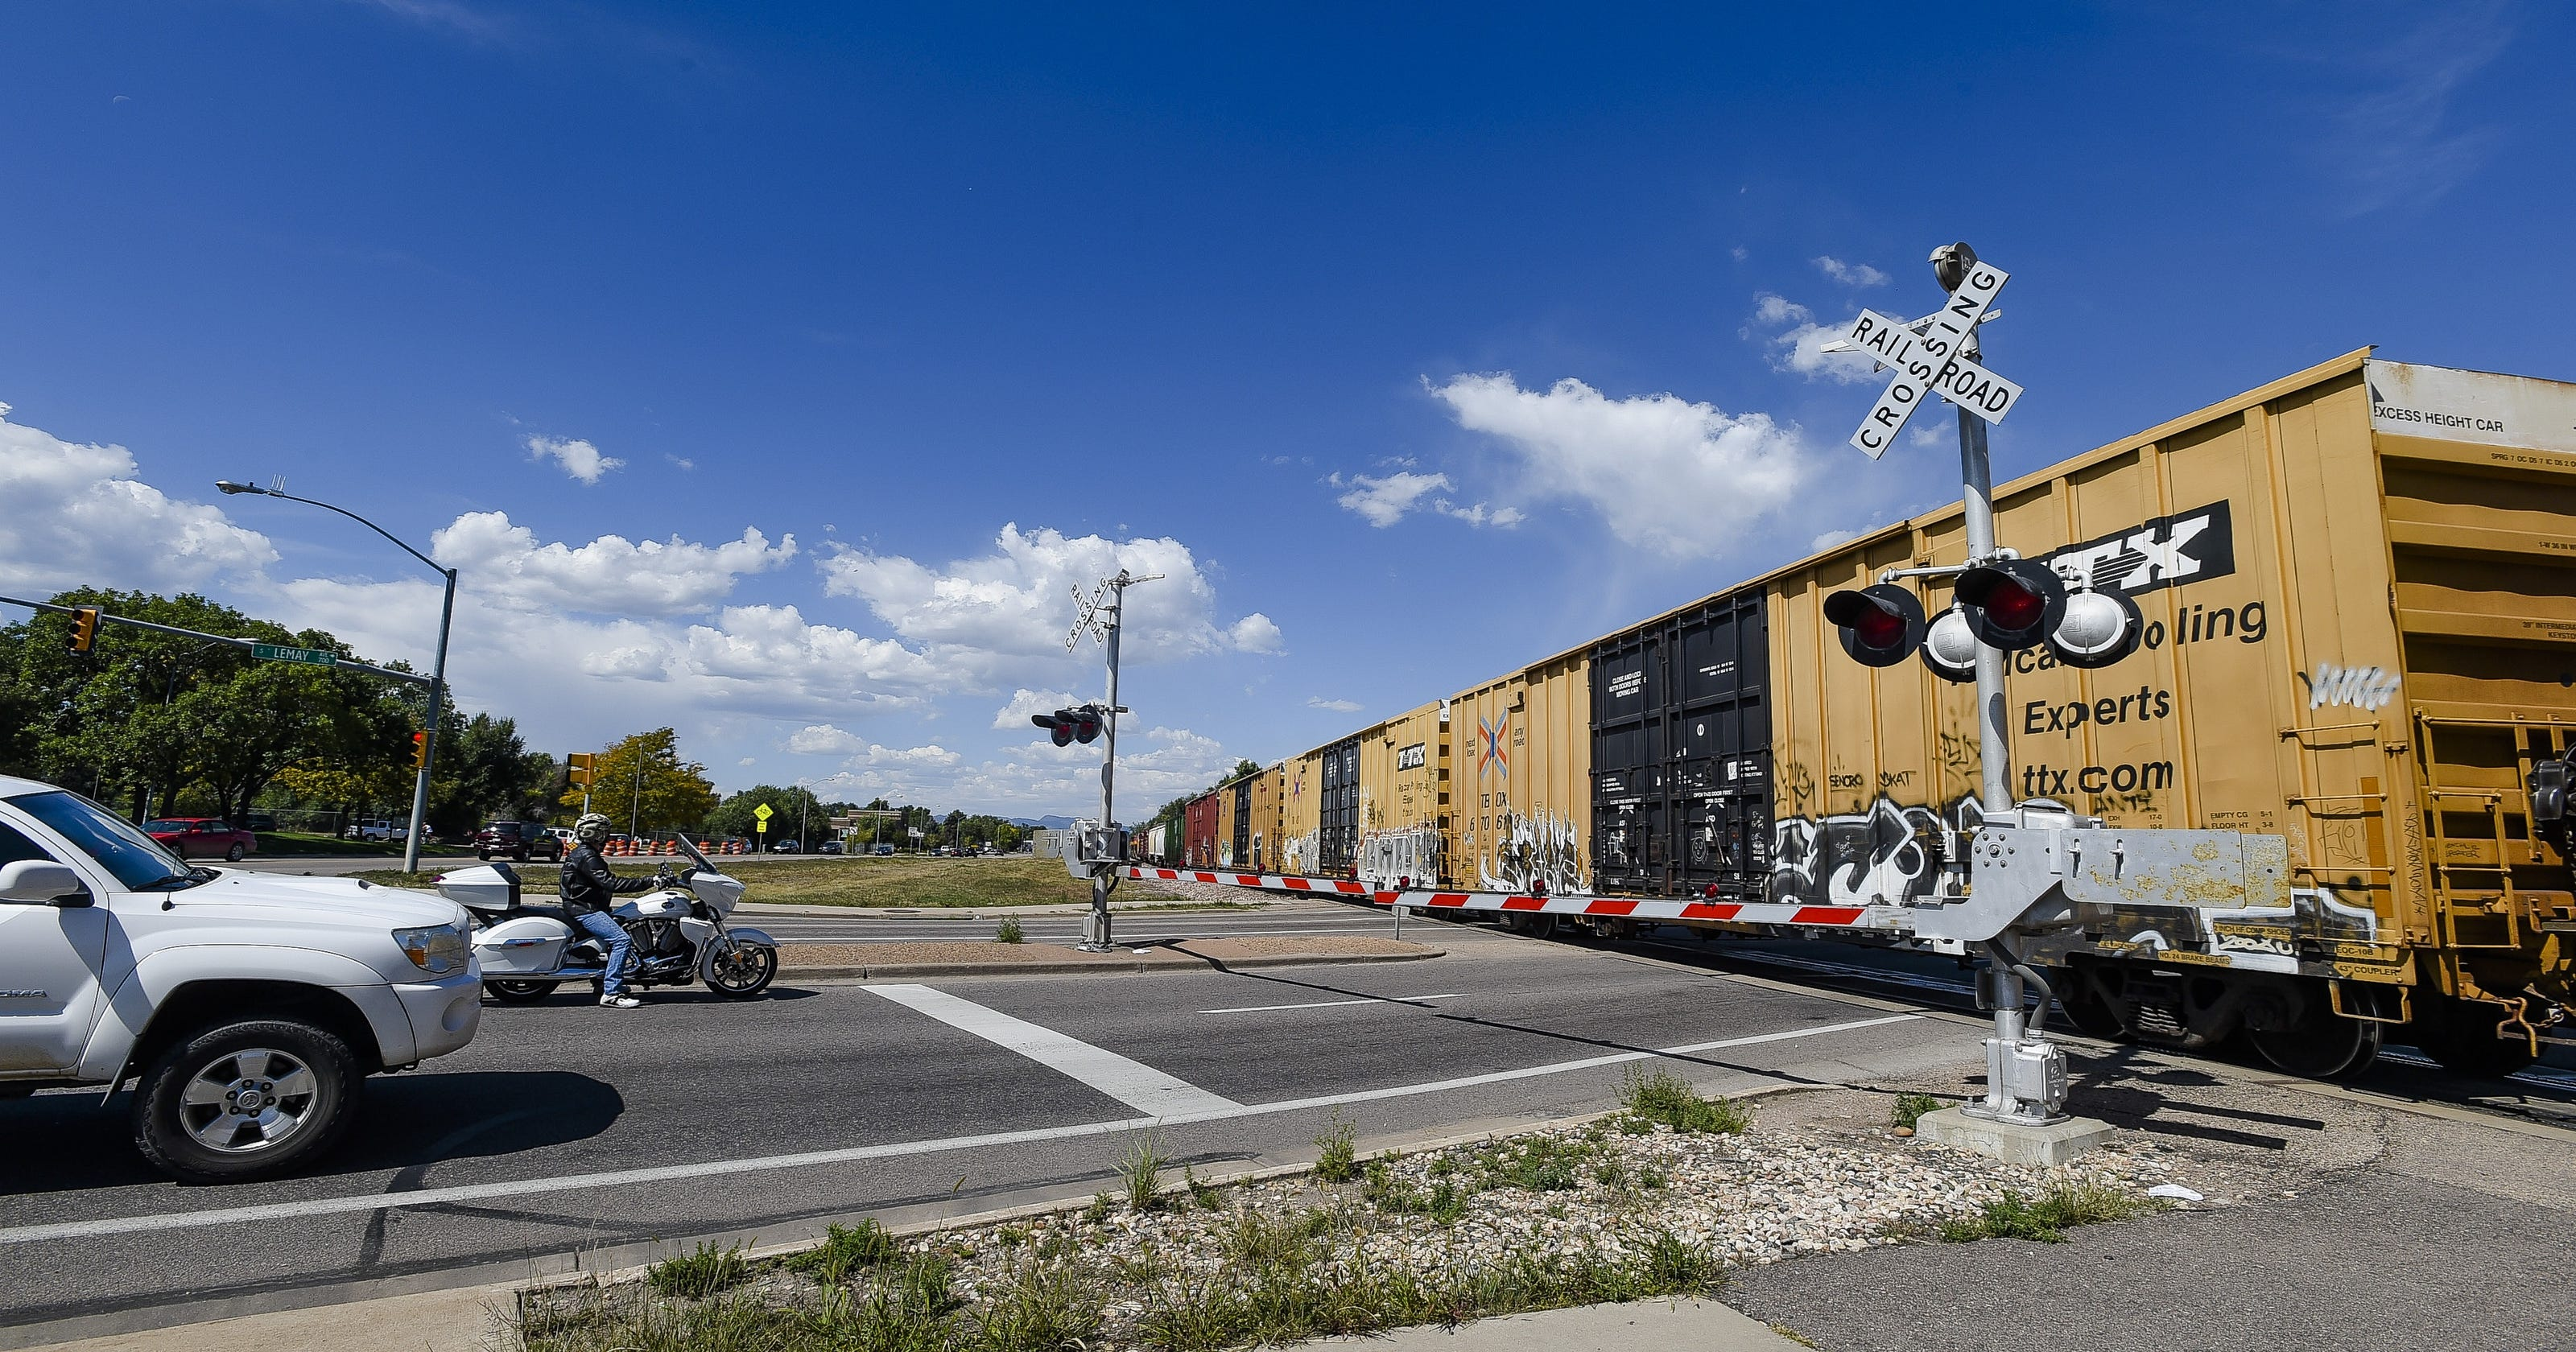 Railroad crossing signals complicate morning commute in Fort